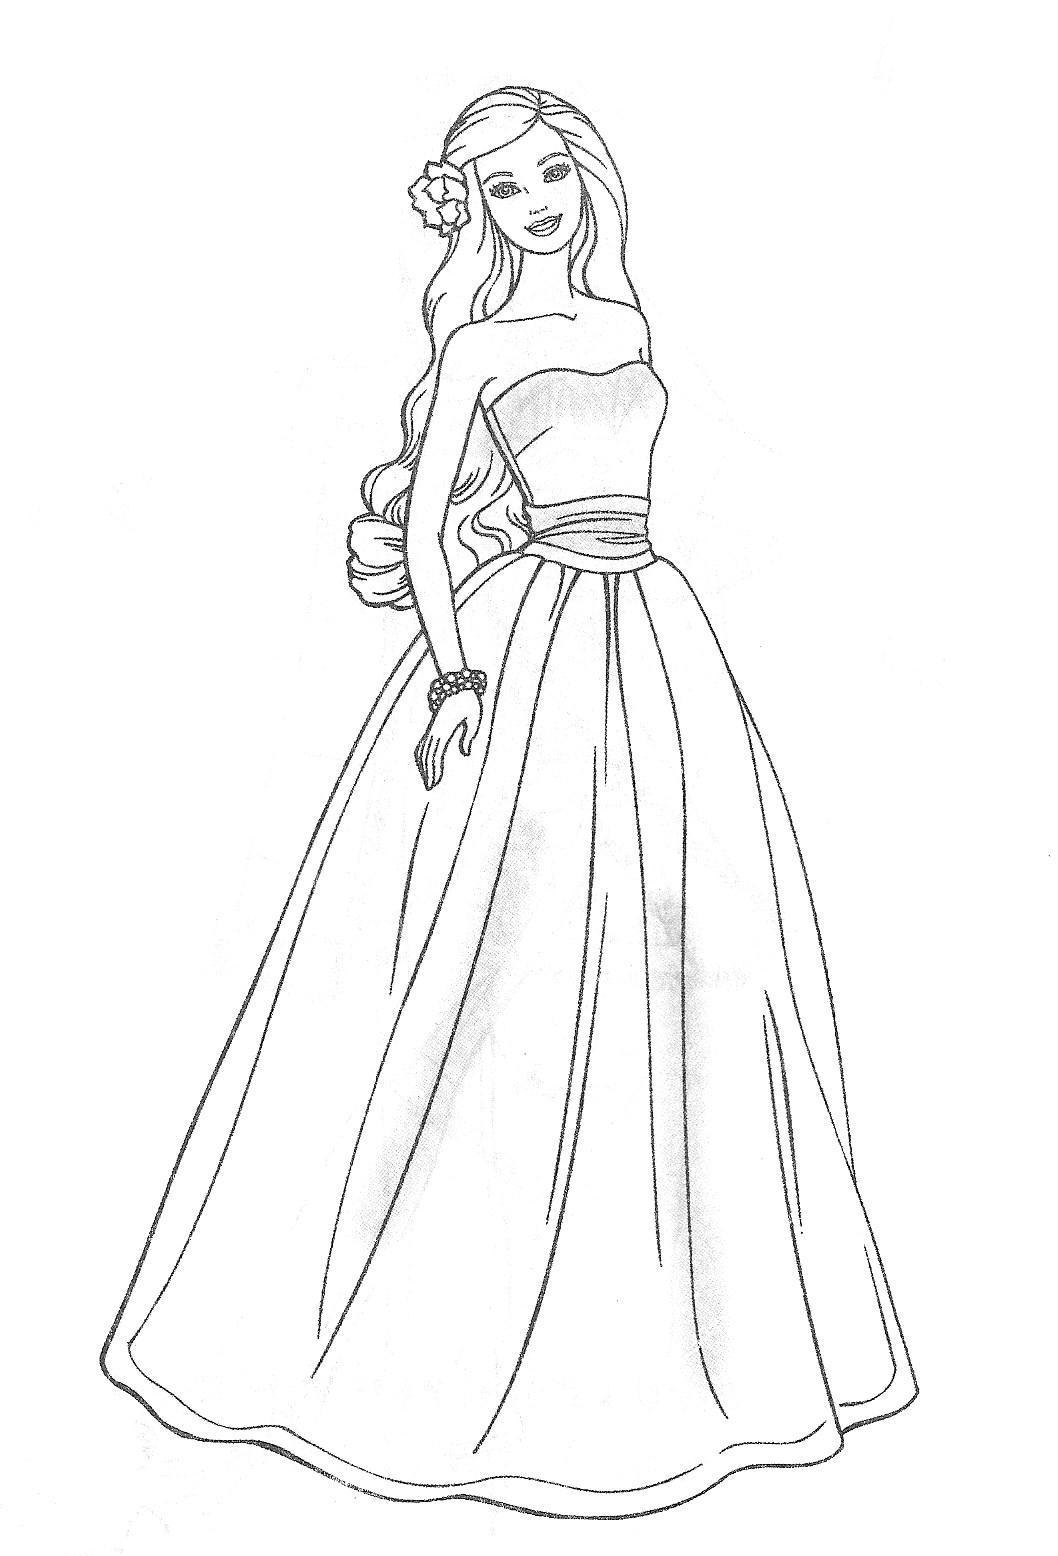 barbie doll pictures to print barbie princess coloring pages cool2bkids barbie to print pictures doll